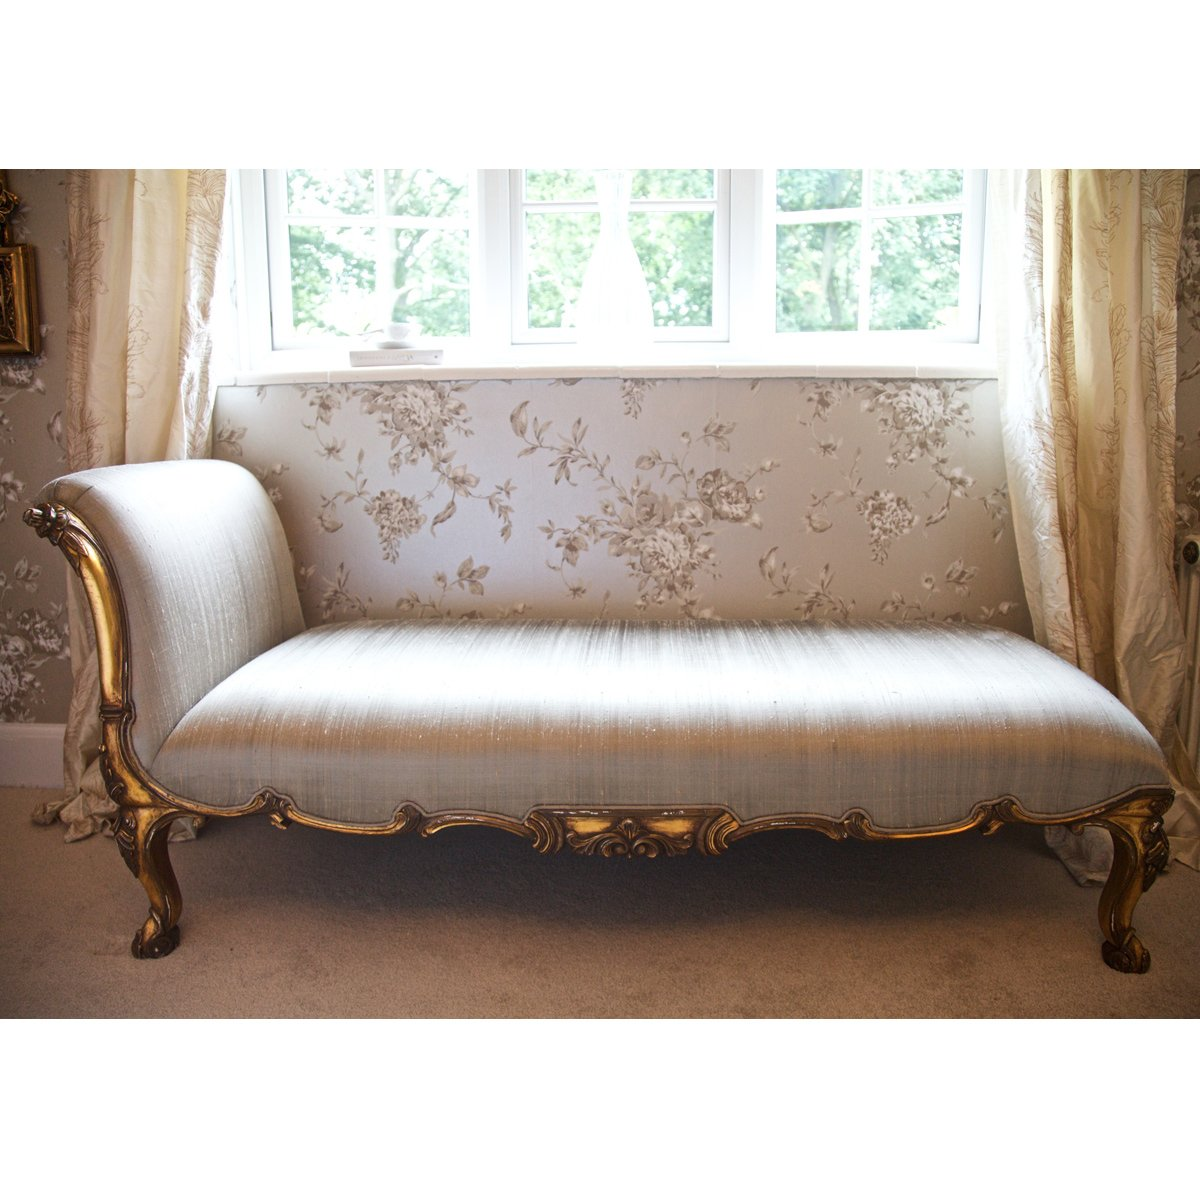 Versailles Gold Chaise Longue French Bedroom pany